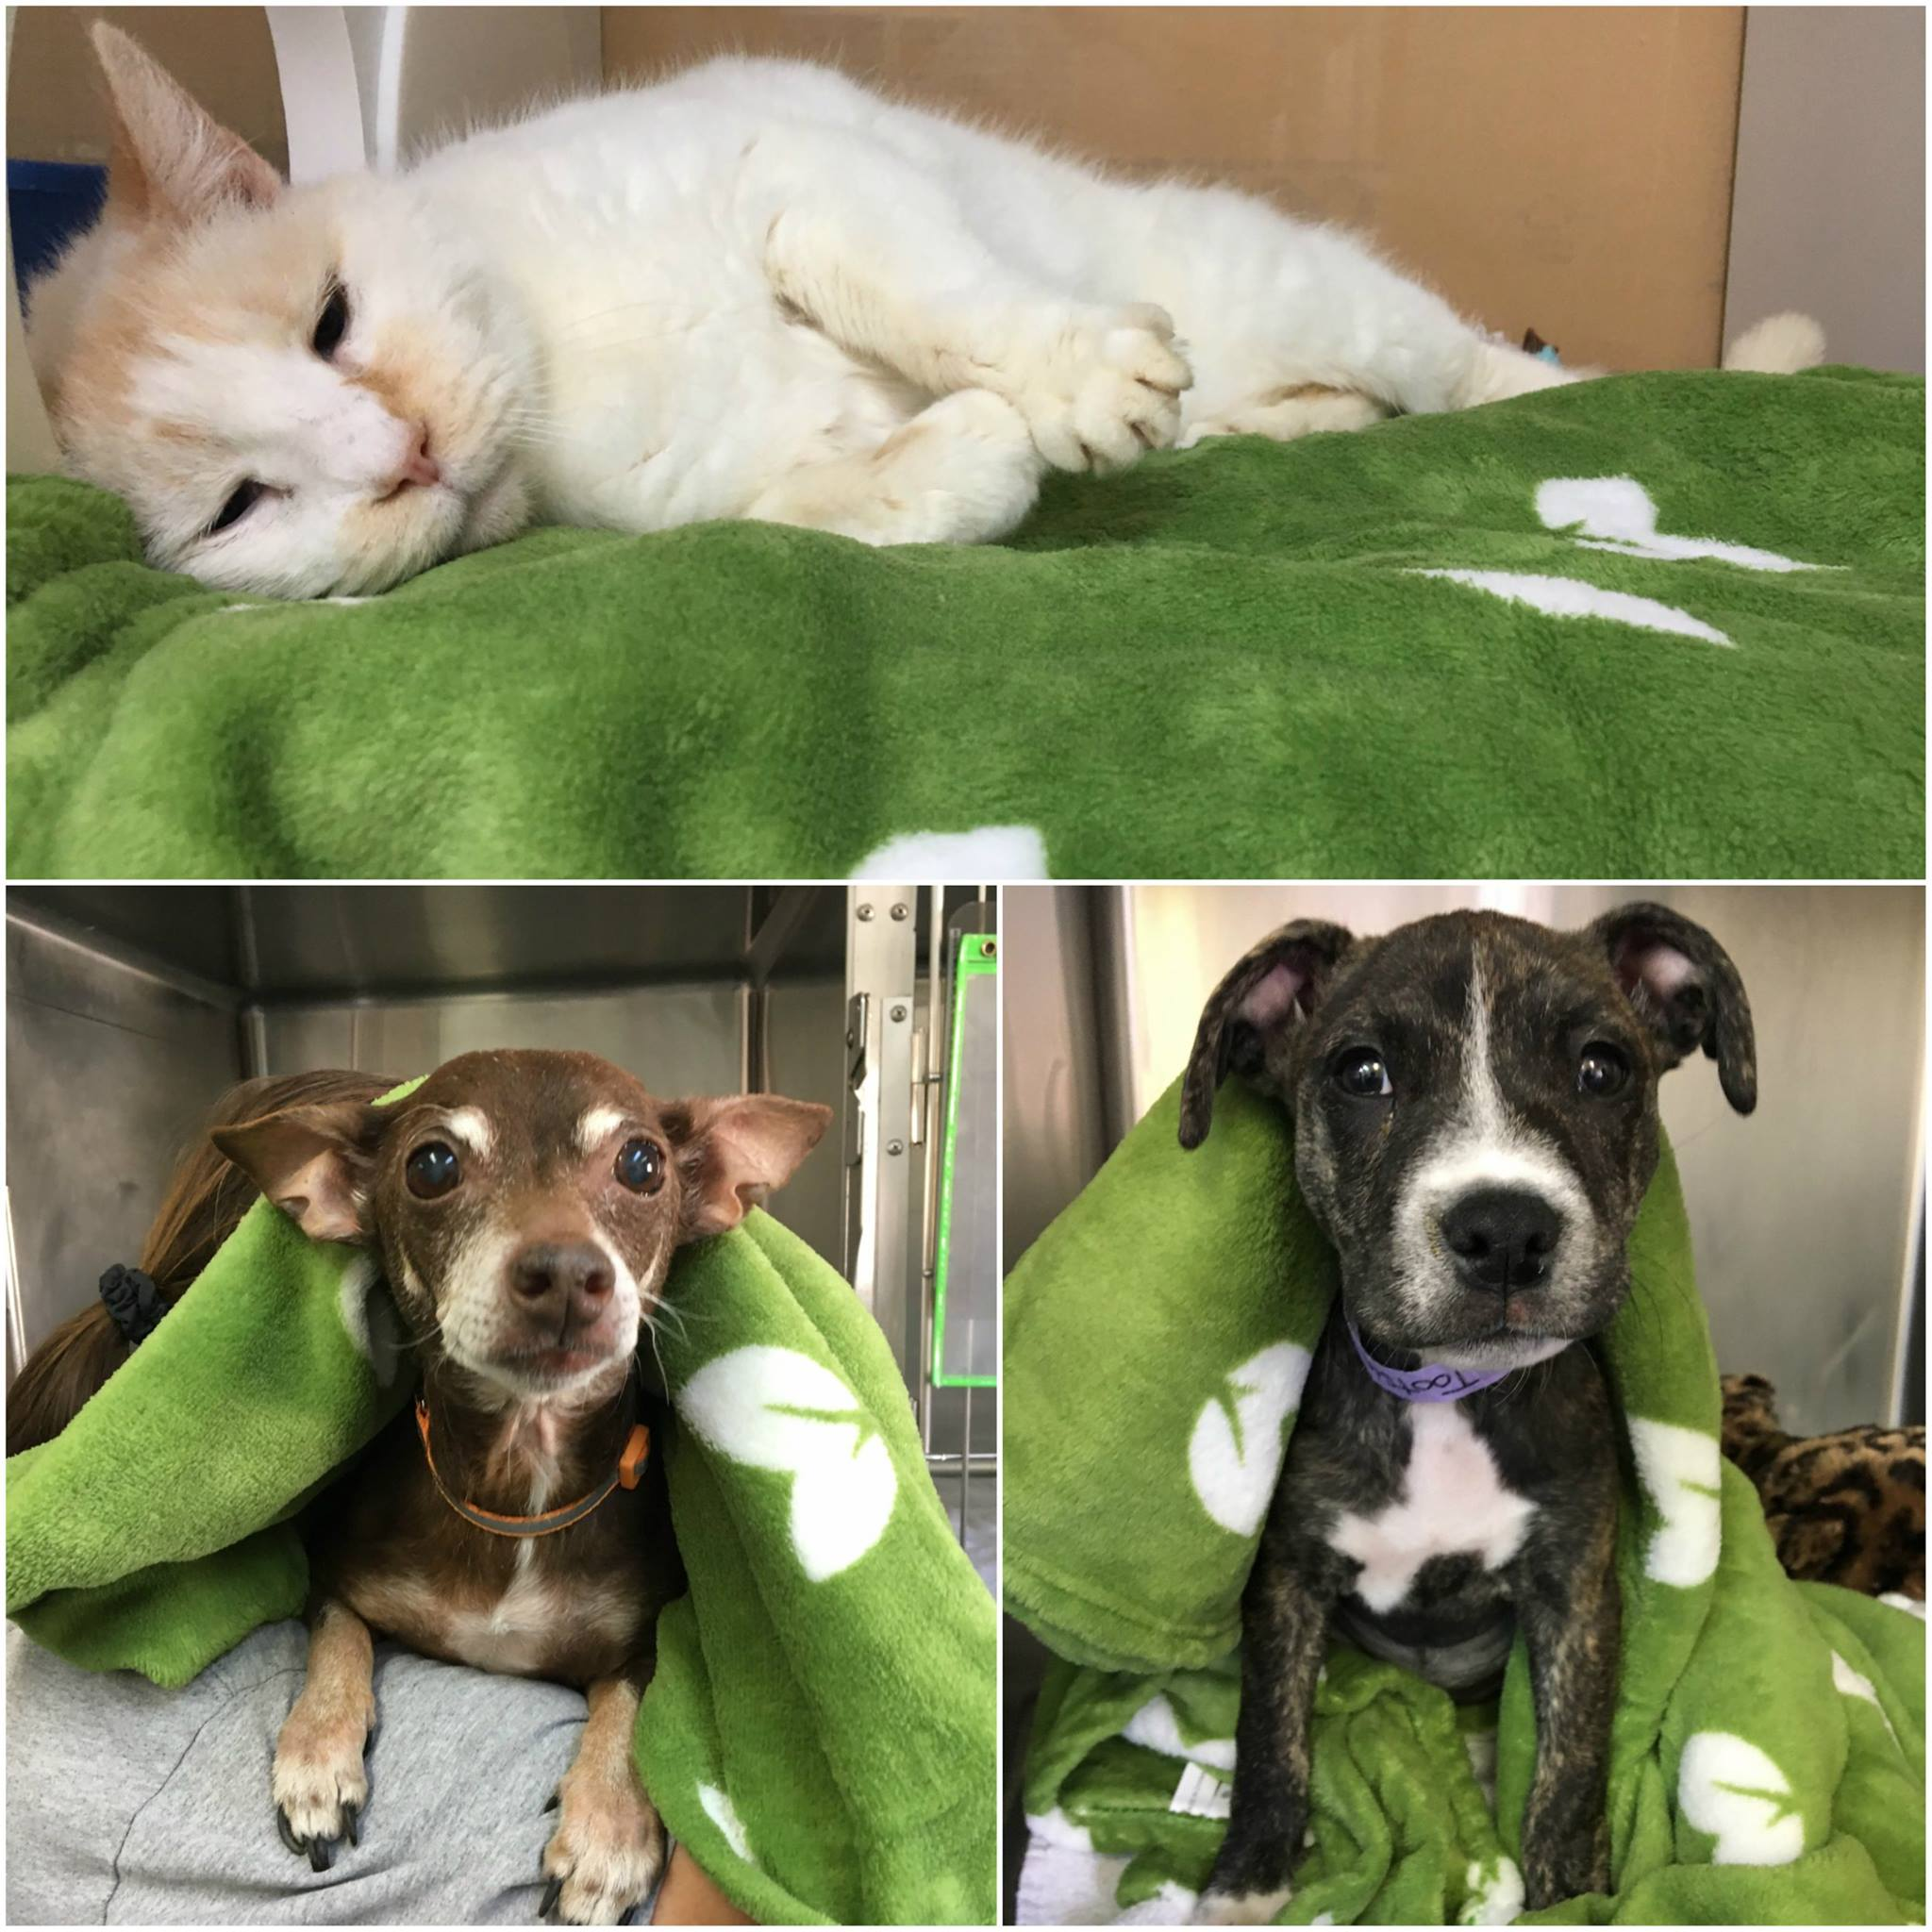 COJ.net - Animal Care and Protective Services